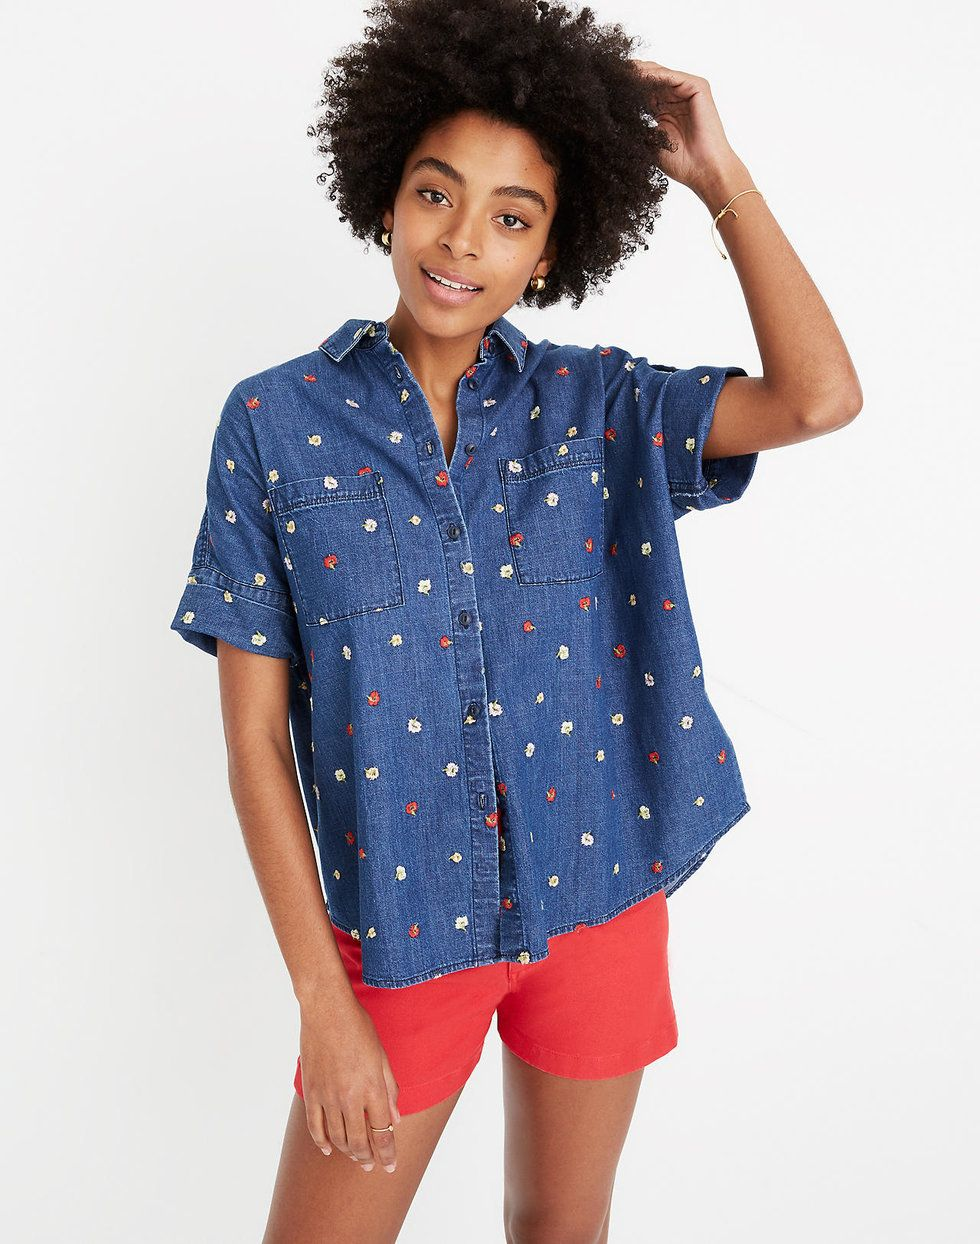 Madewell embroidered denim shirt